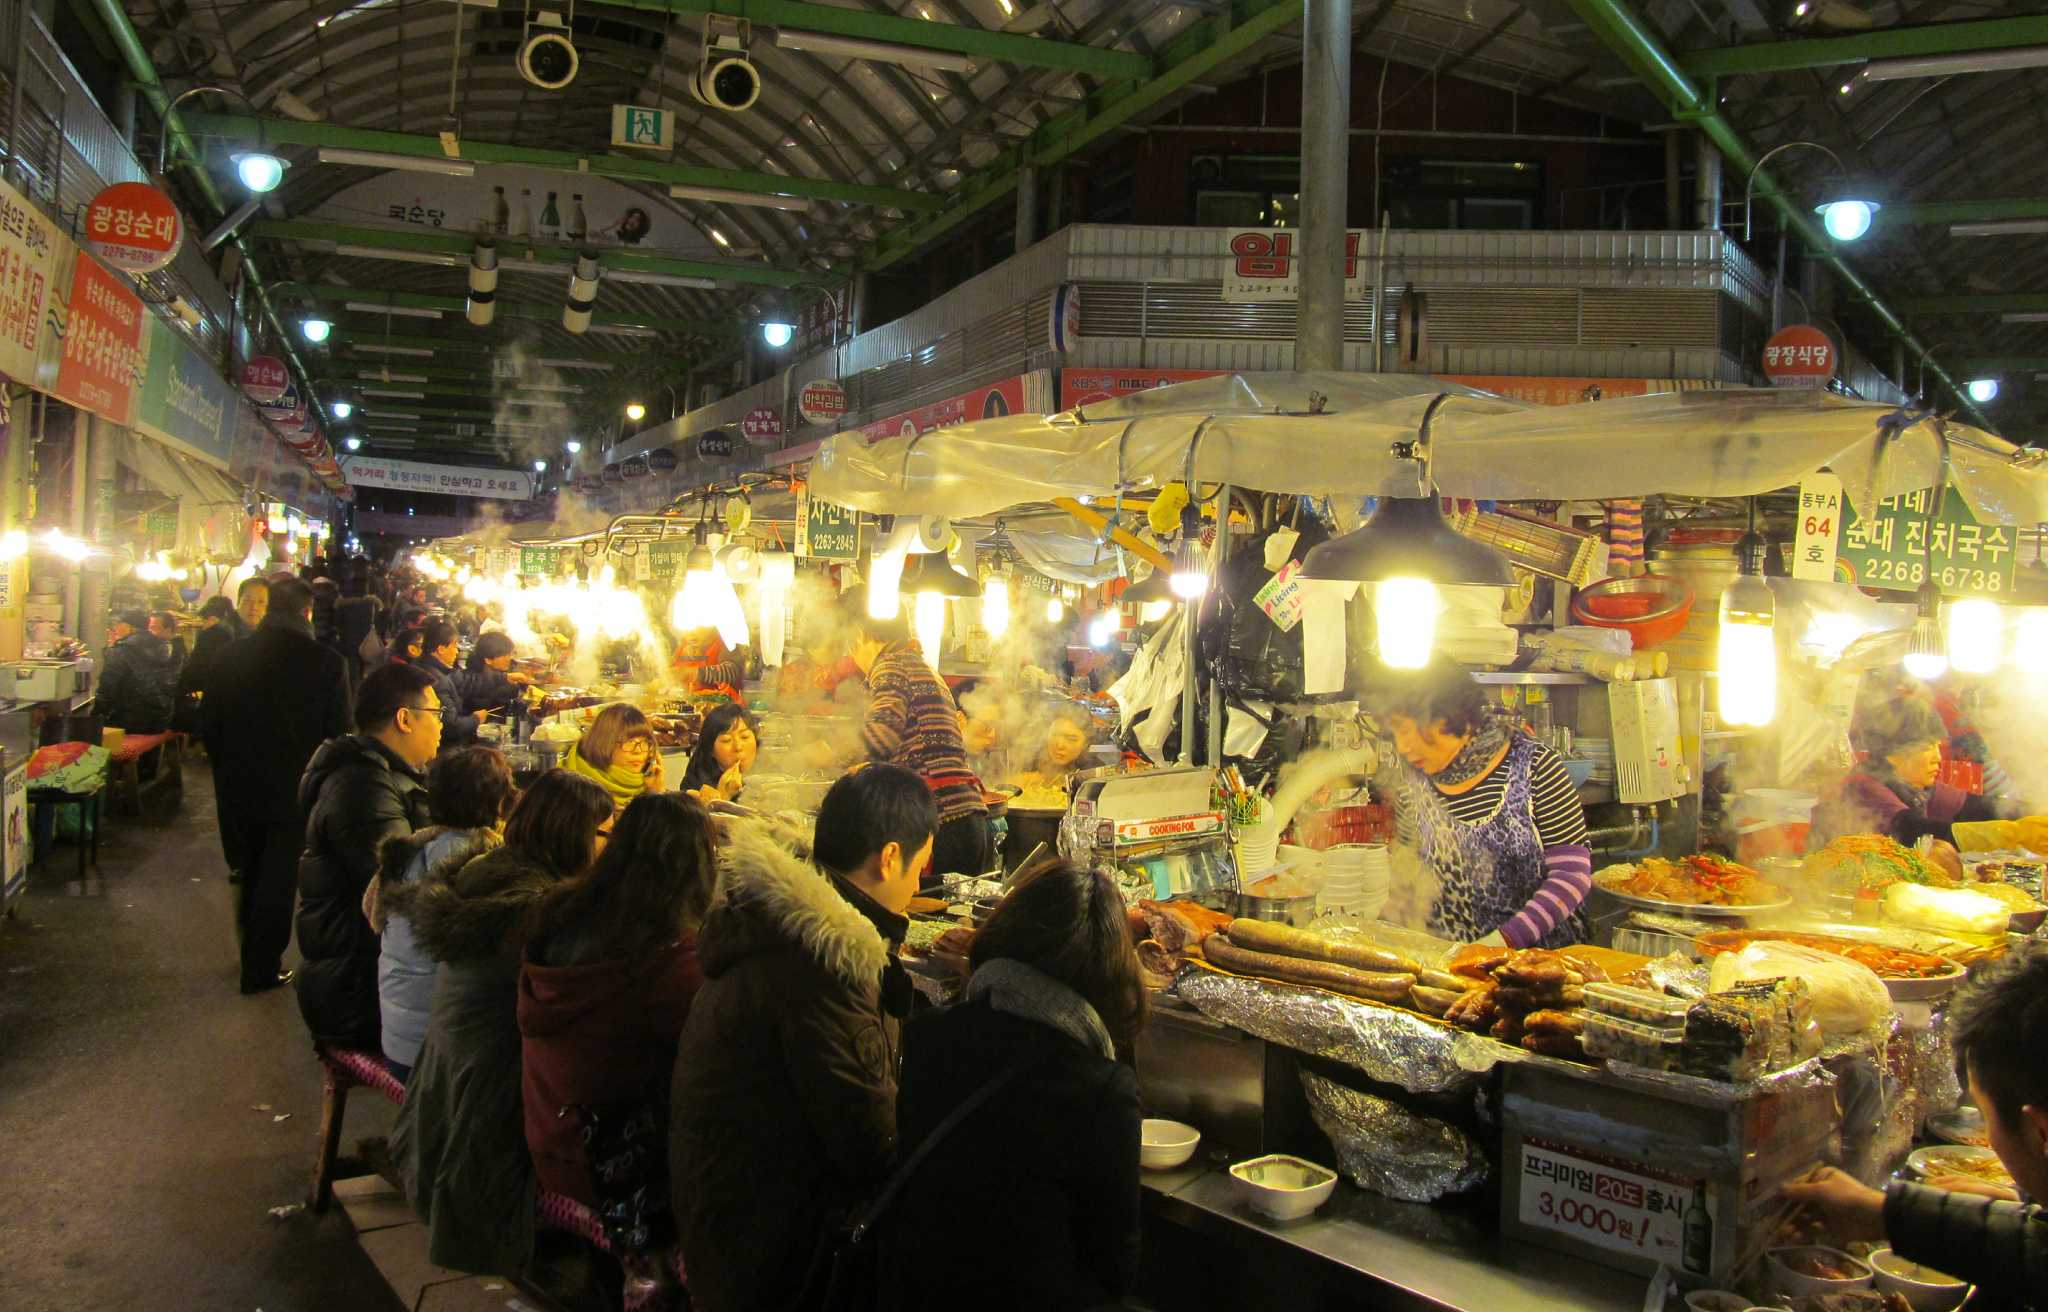 Seoul: Trains, fast cell service, palaces and food ...